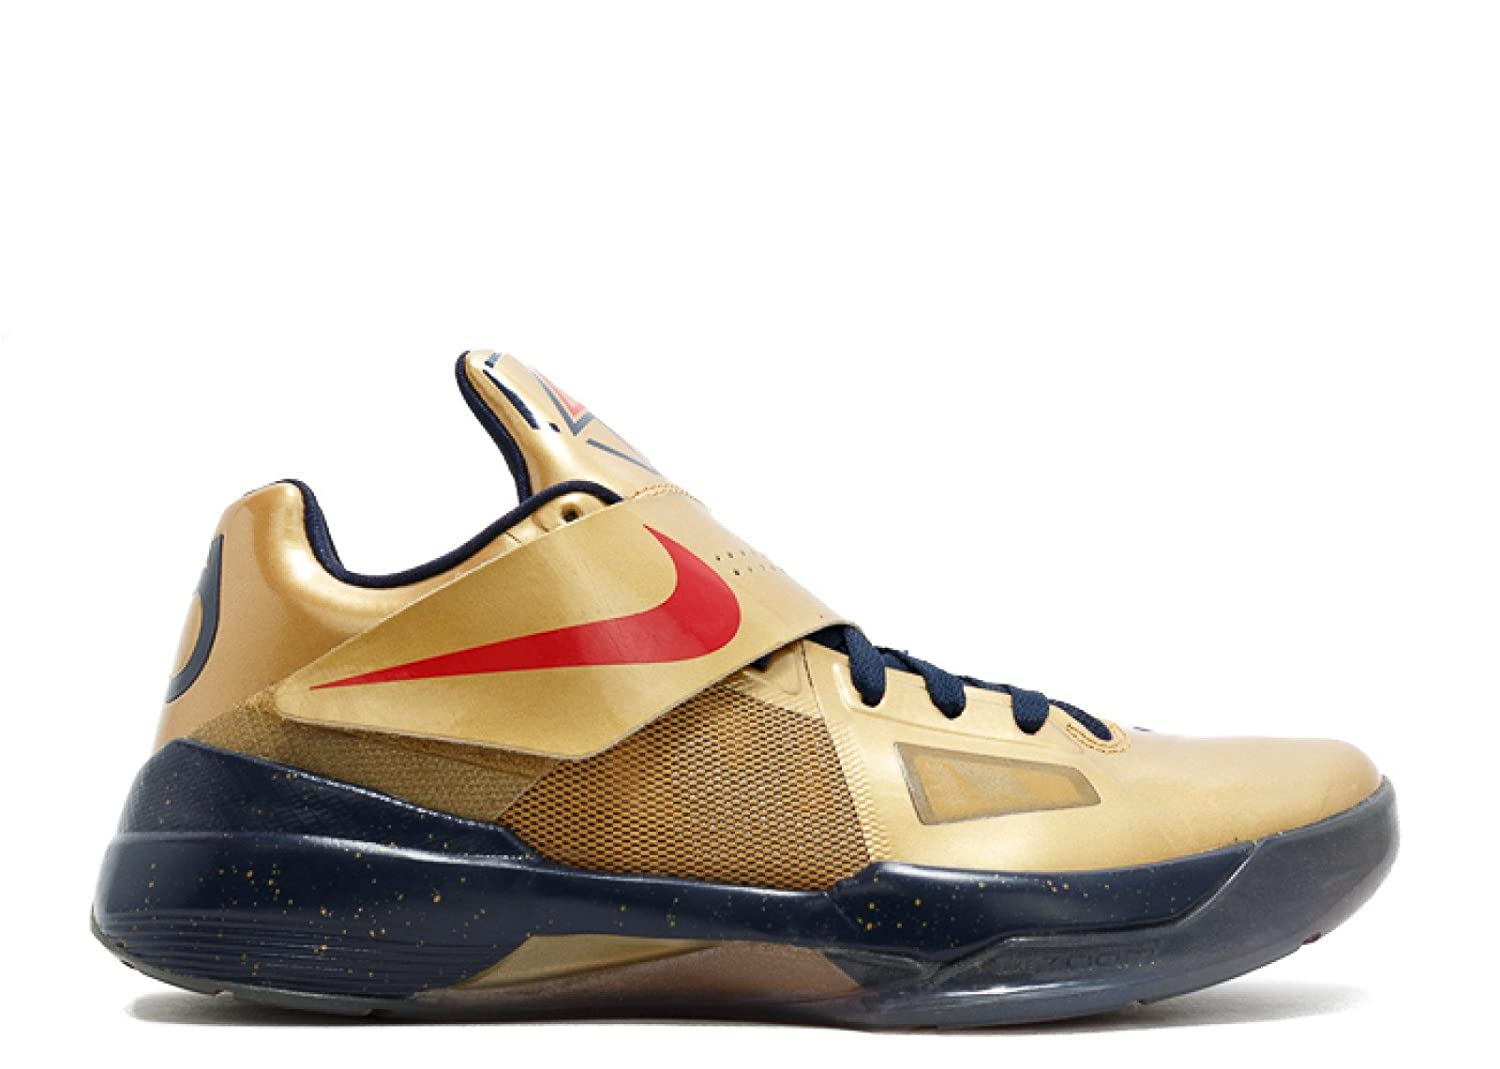 new concept 3466f ae709 Amazon.com   Nike Zoom Kd Iv Gold Medal (473679-702) Limited   Basketball